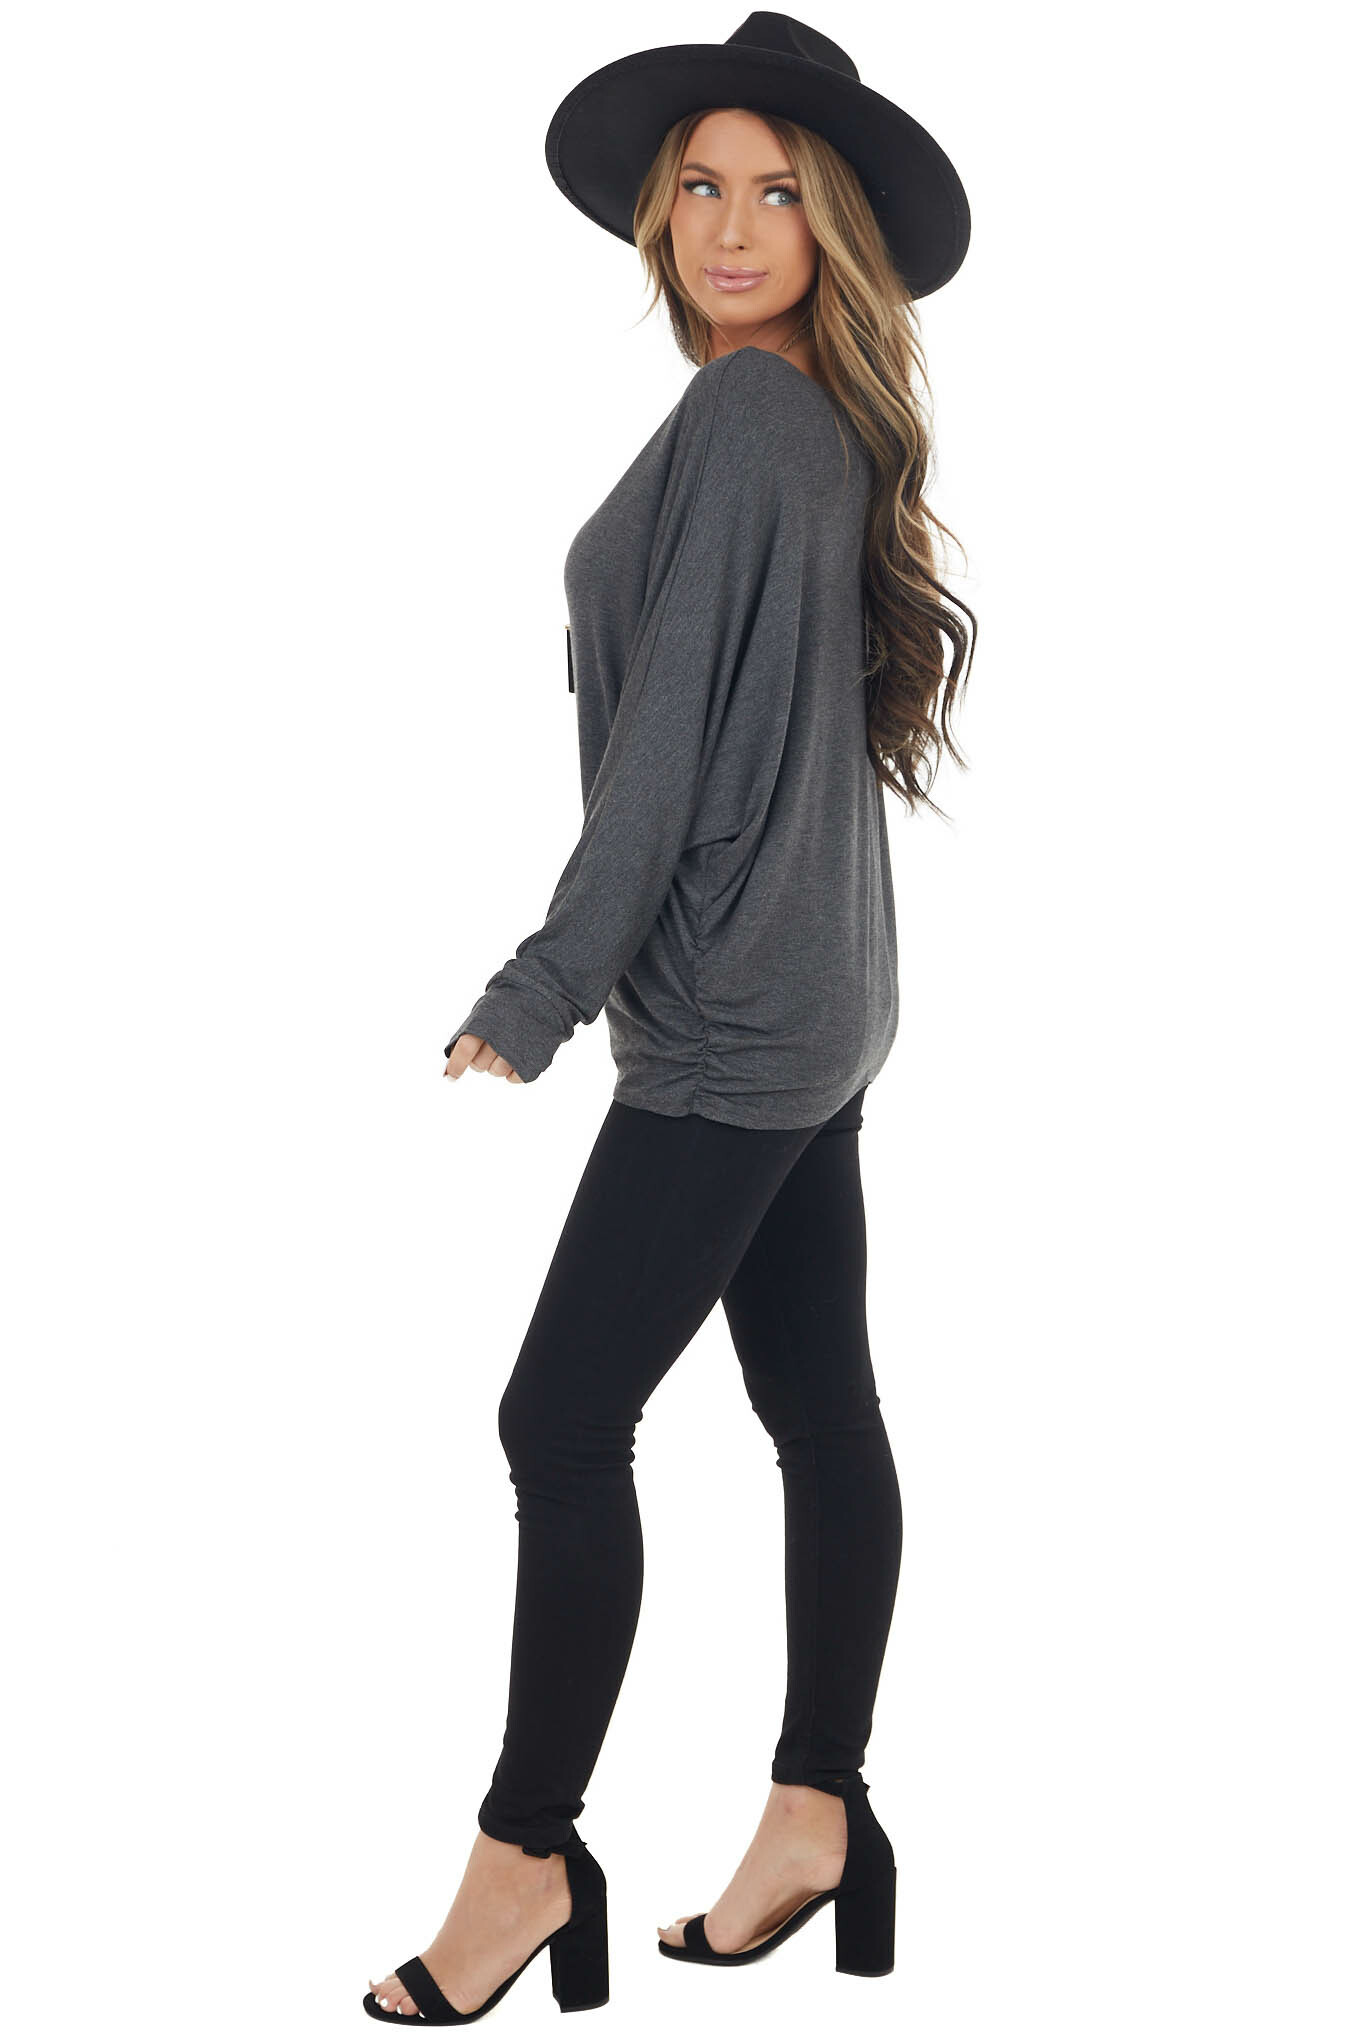 Stormy Dolman Sleeve Stretchy Knit Top with Banded Cuffs